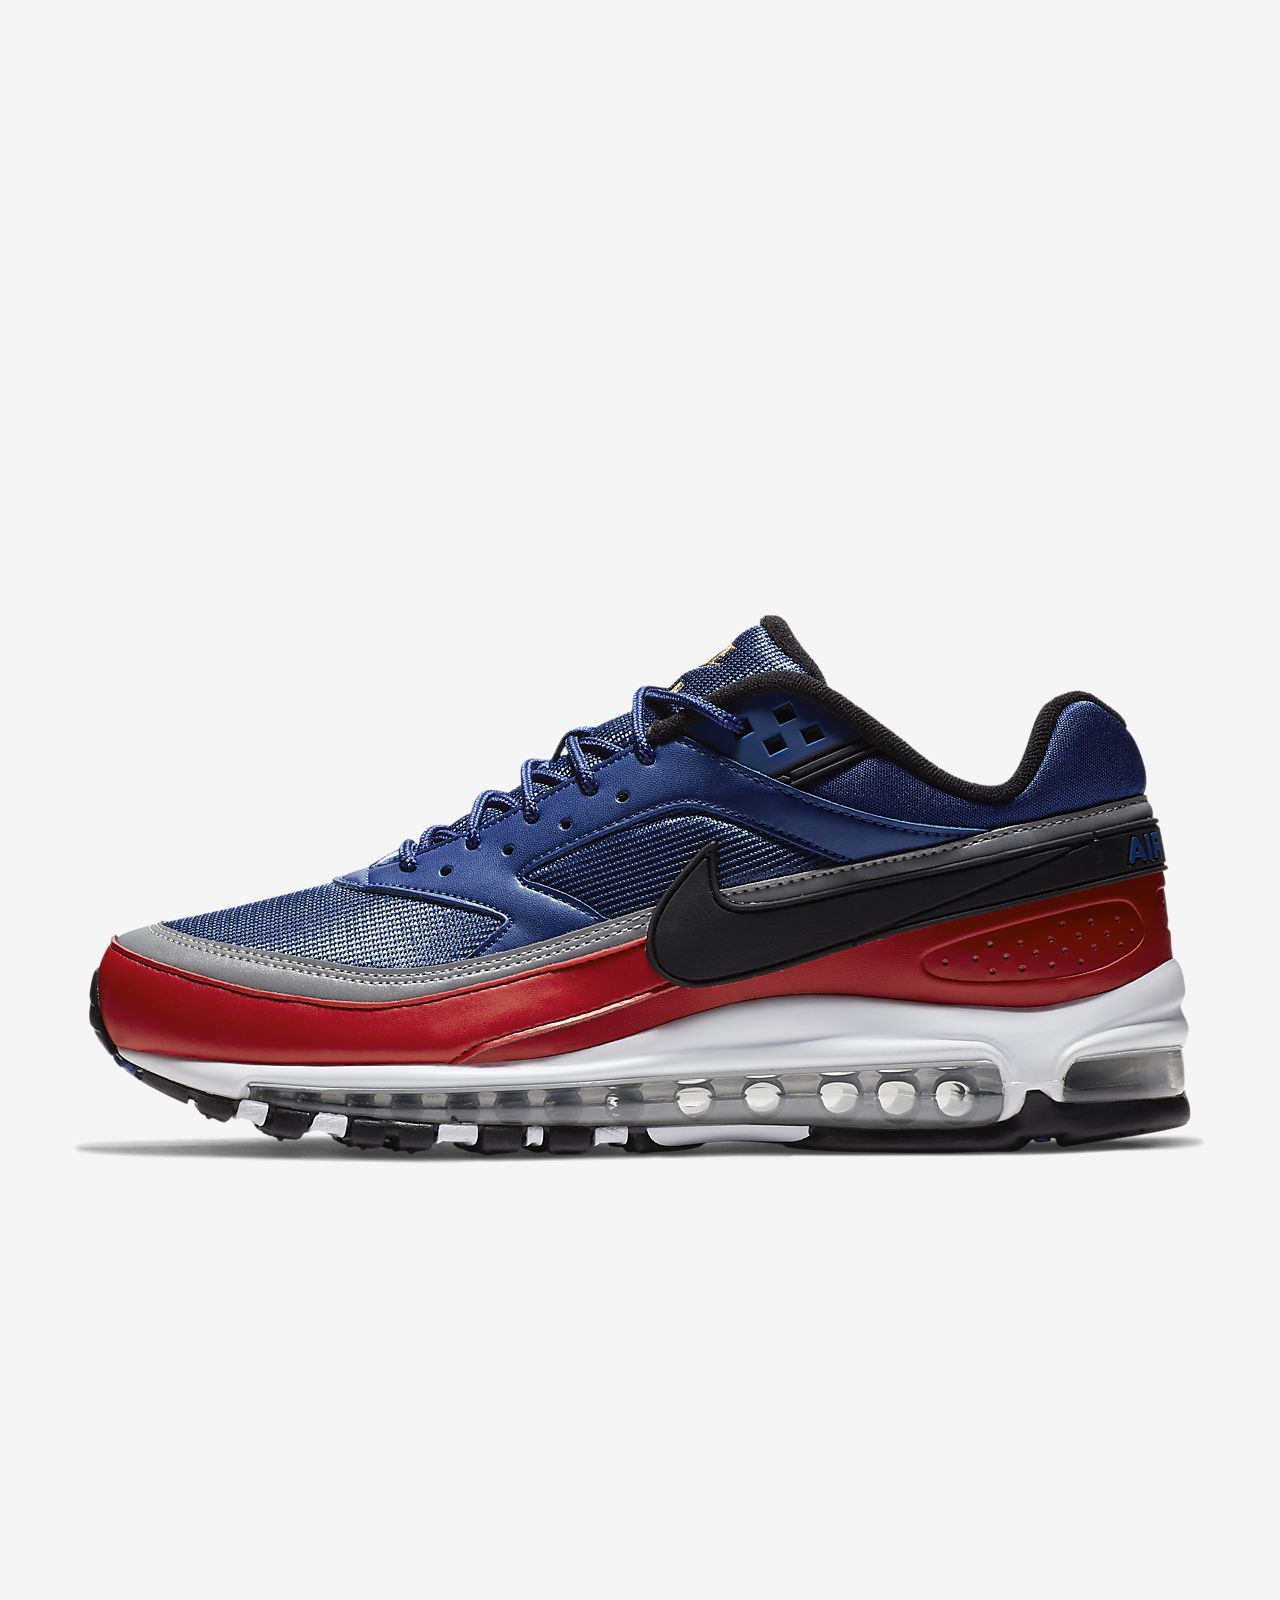 best sneakers ccc81 f10b8 ... Chaussure Nike Air Max 97 BW pour Homme